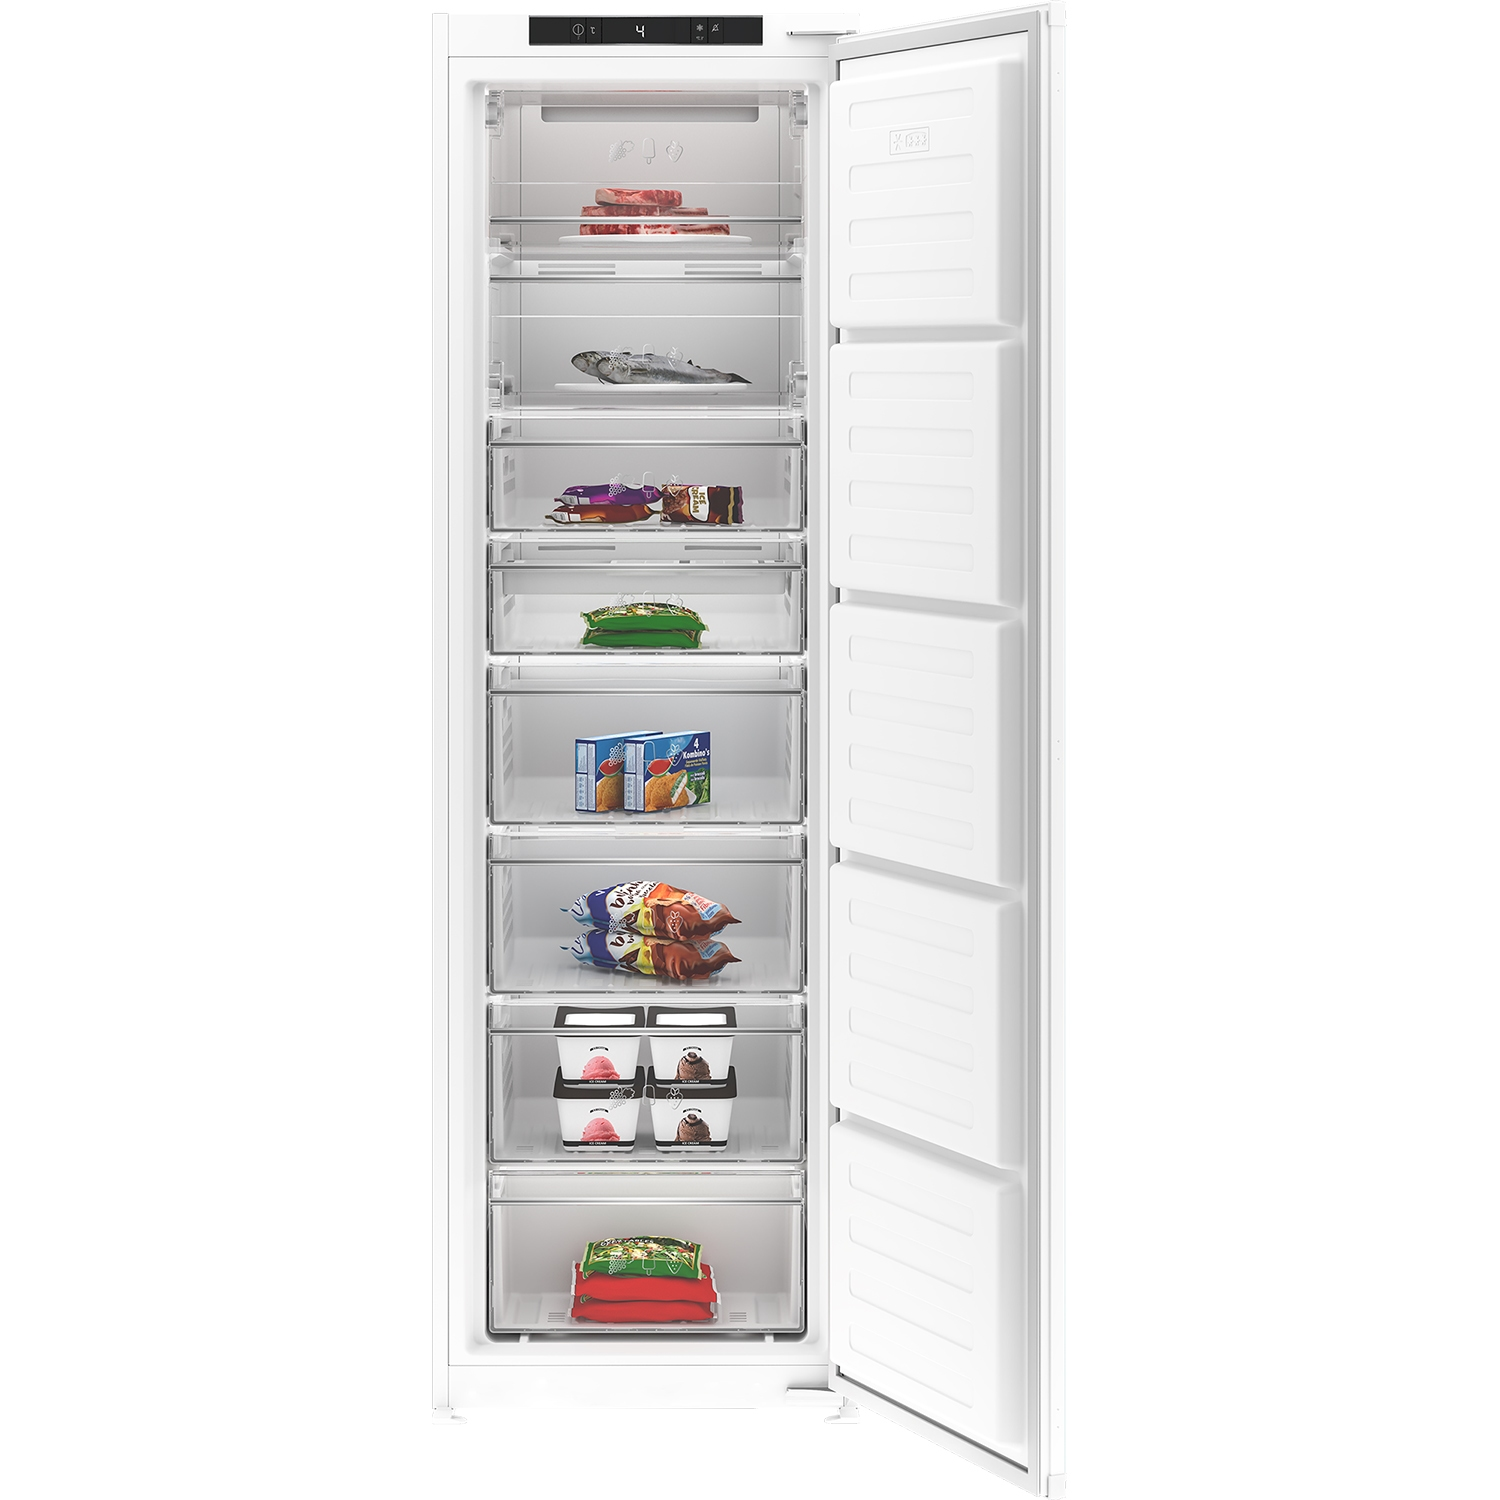 Blomberg 54cm Integrated Frost Free Tall Freezer - White - 0